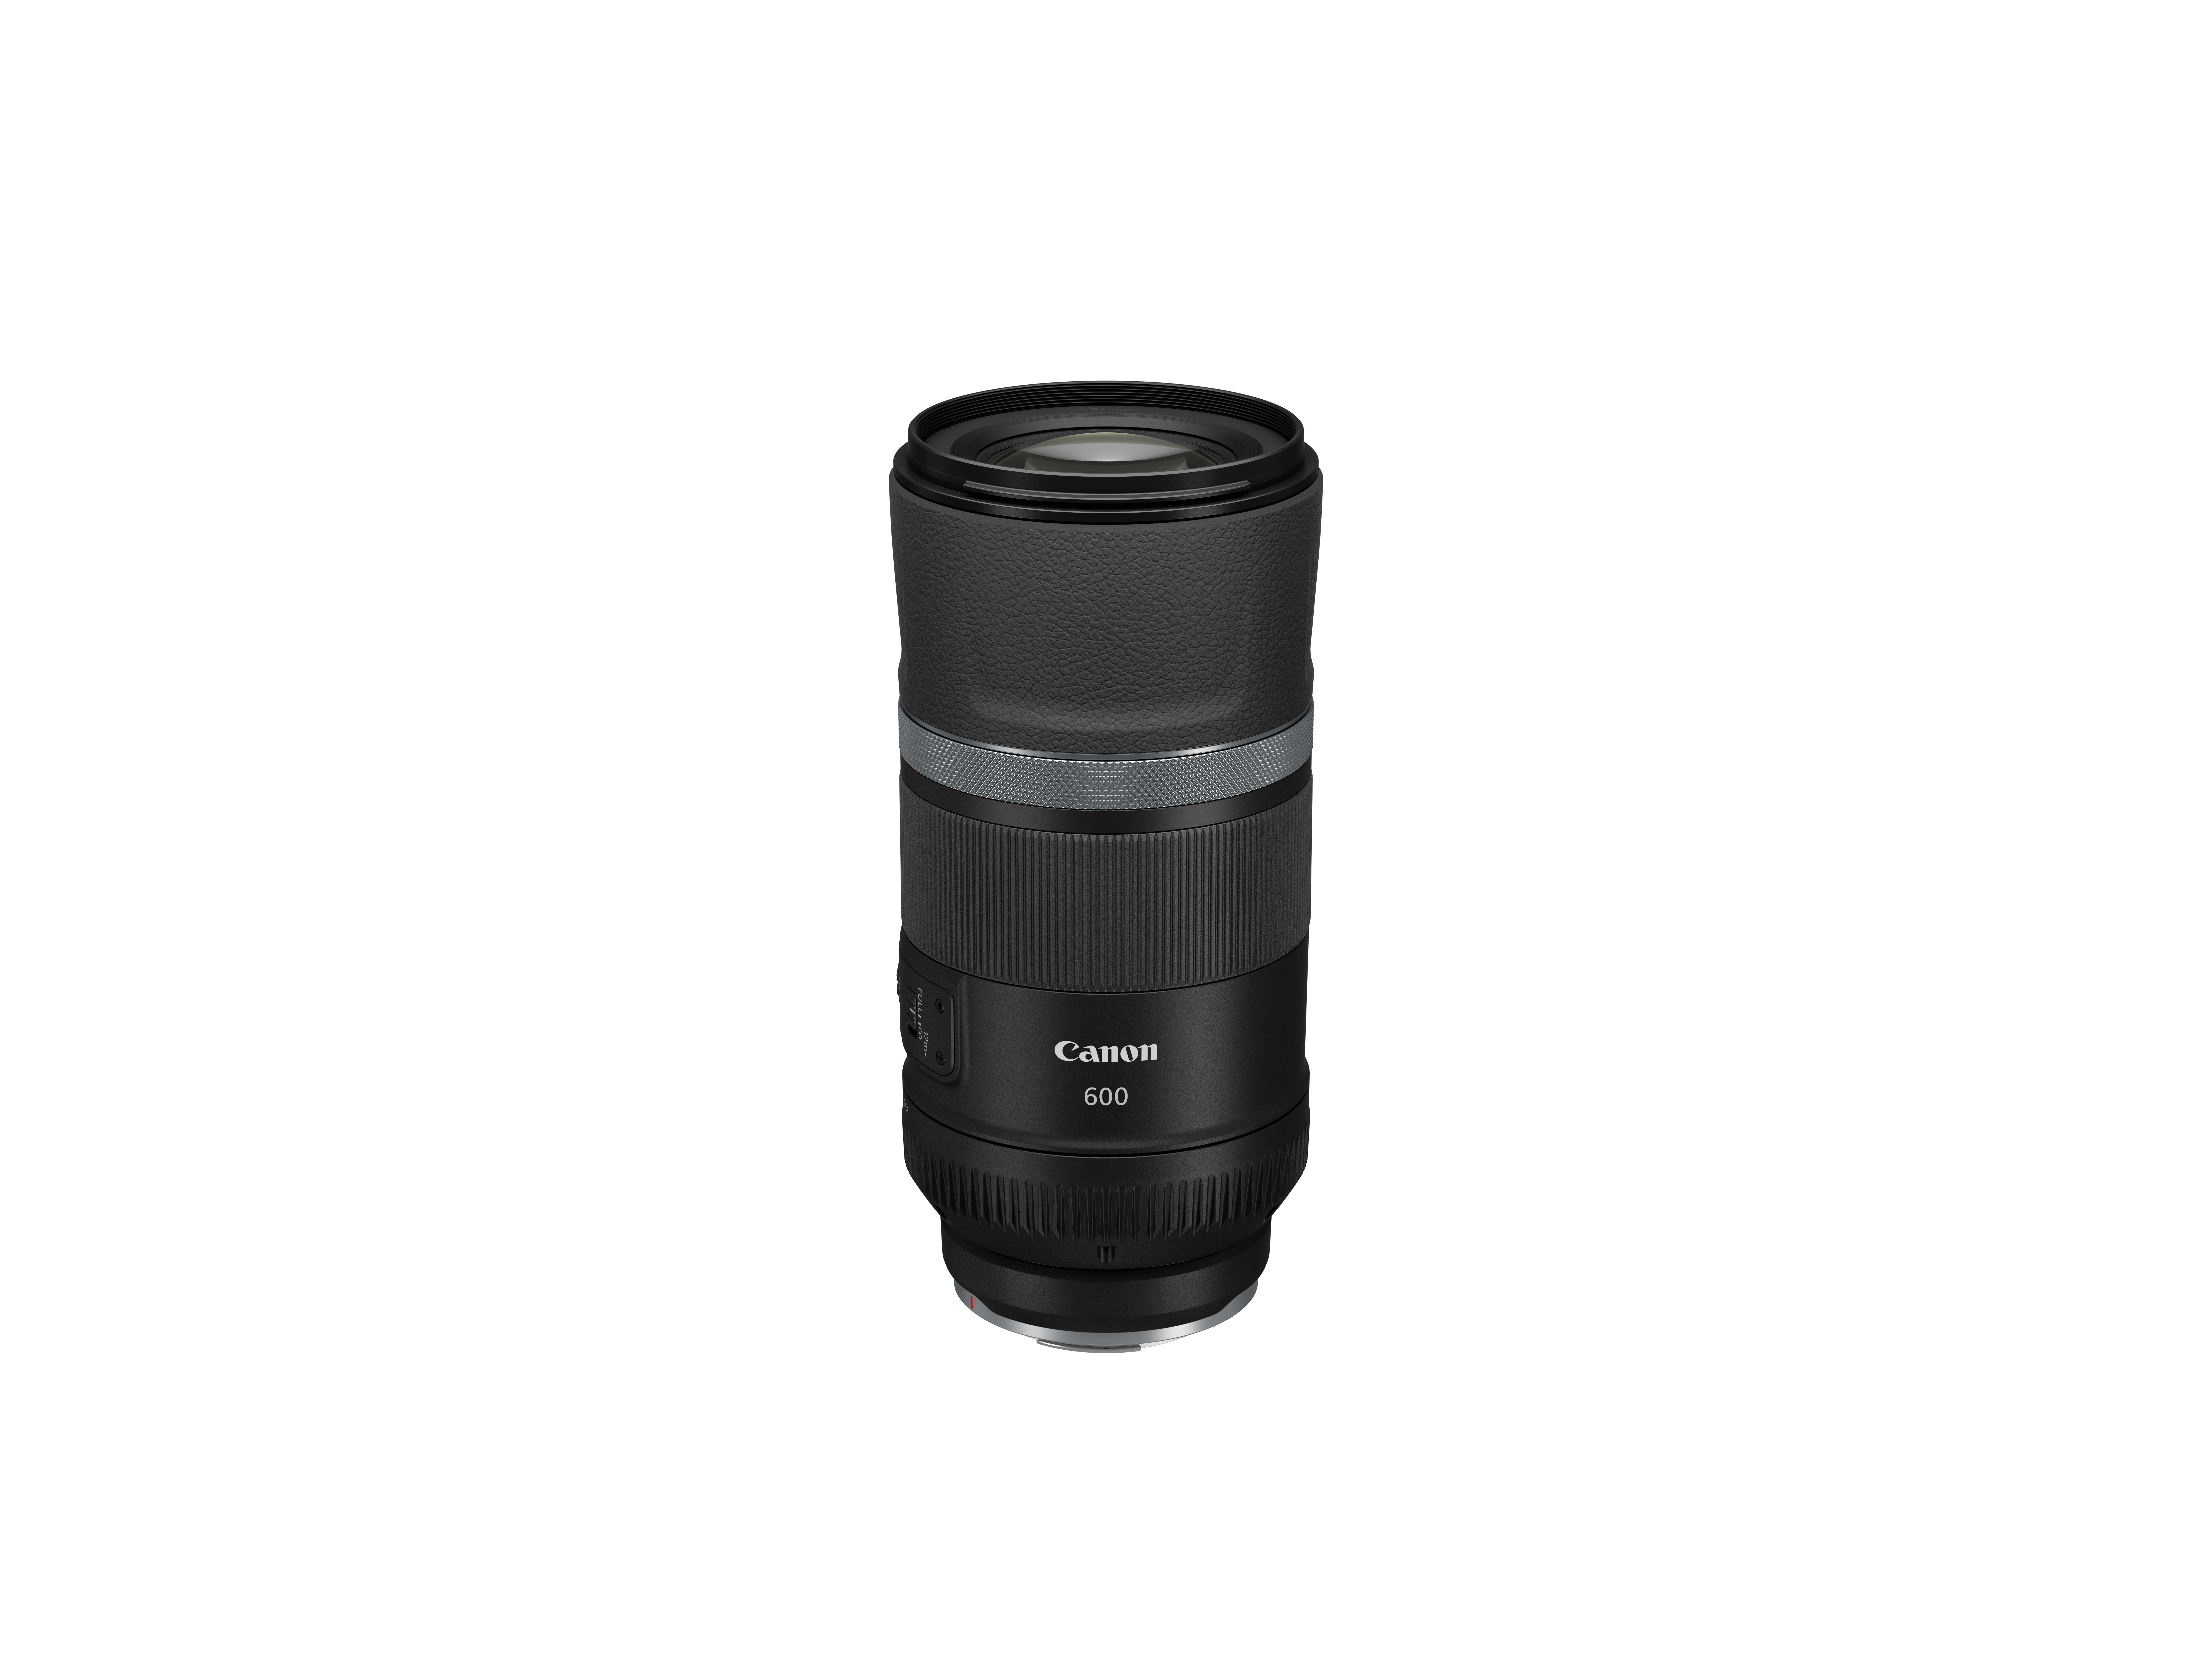 Canon RF 600mm f/11 IS STM Image 2